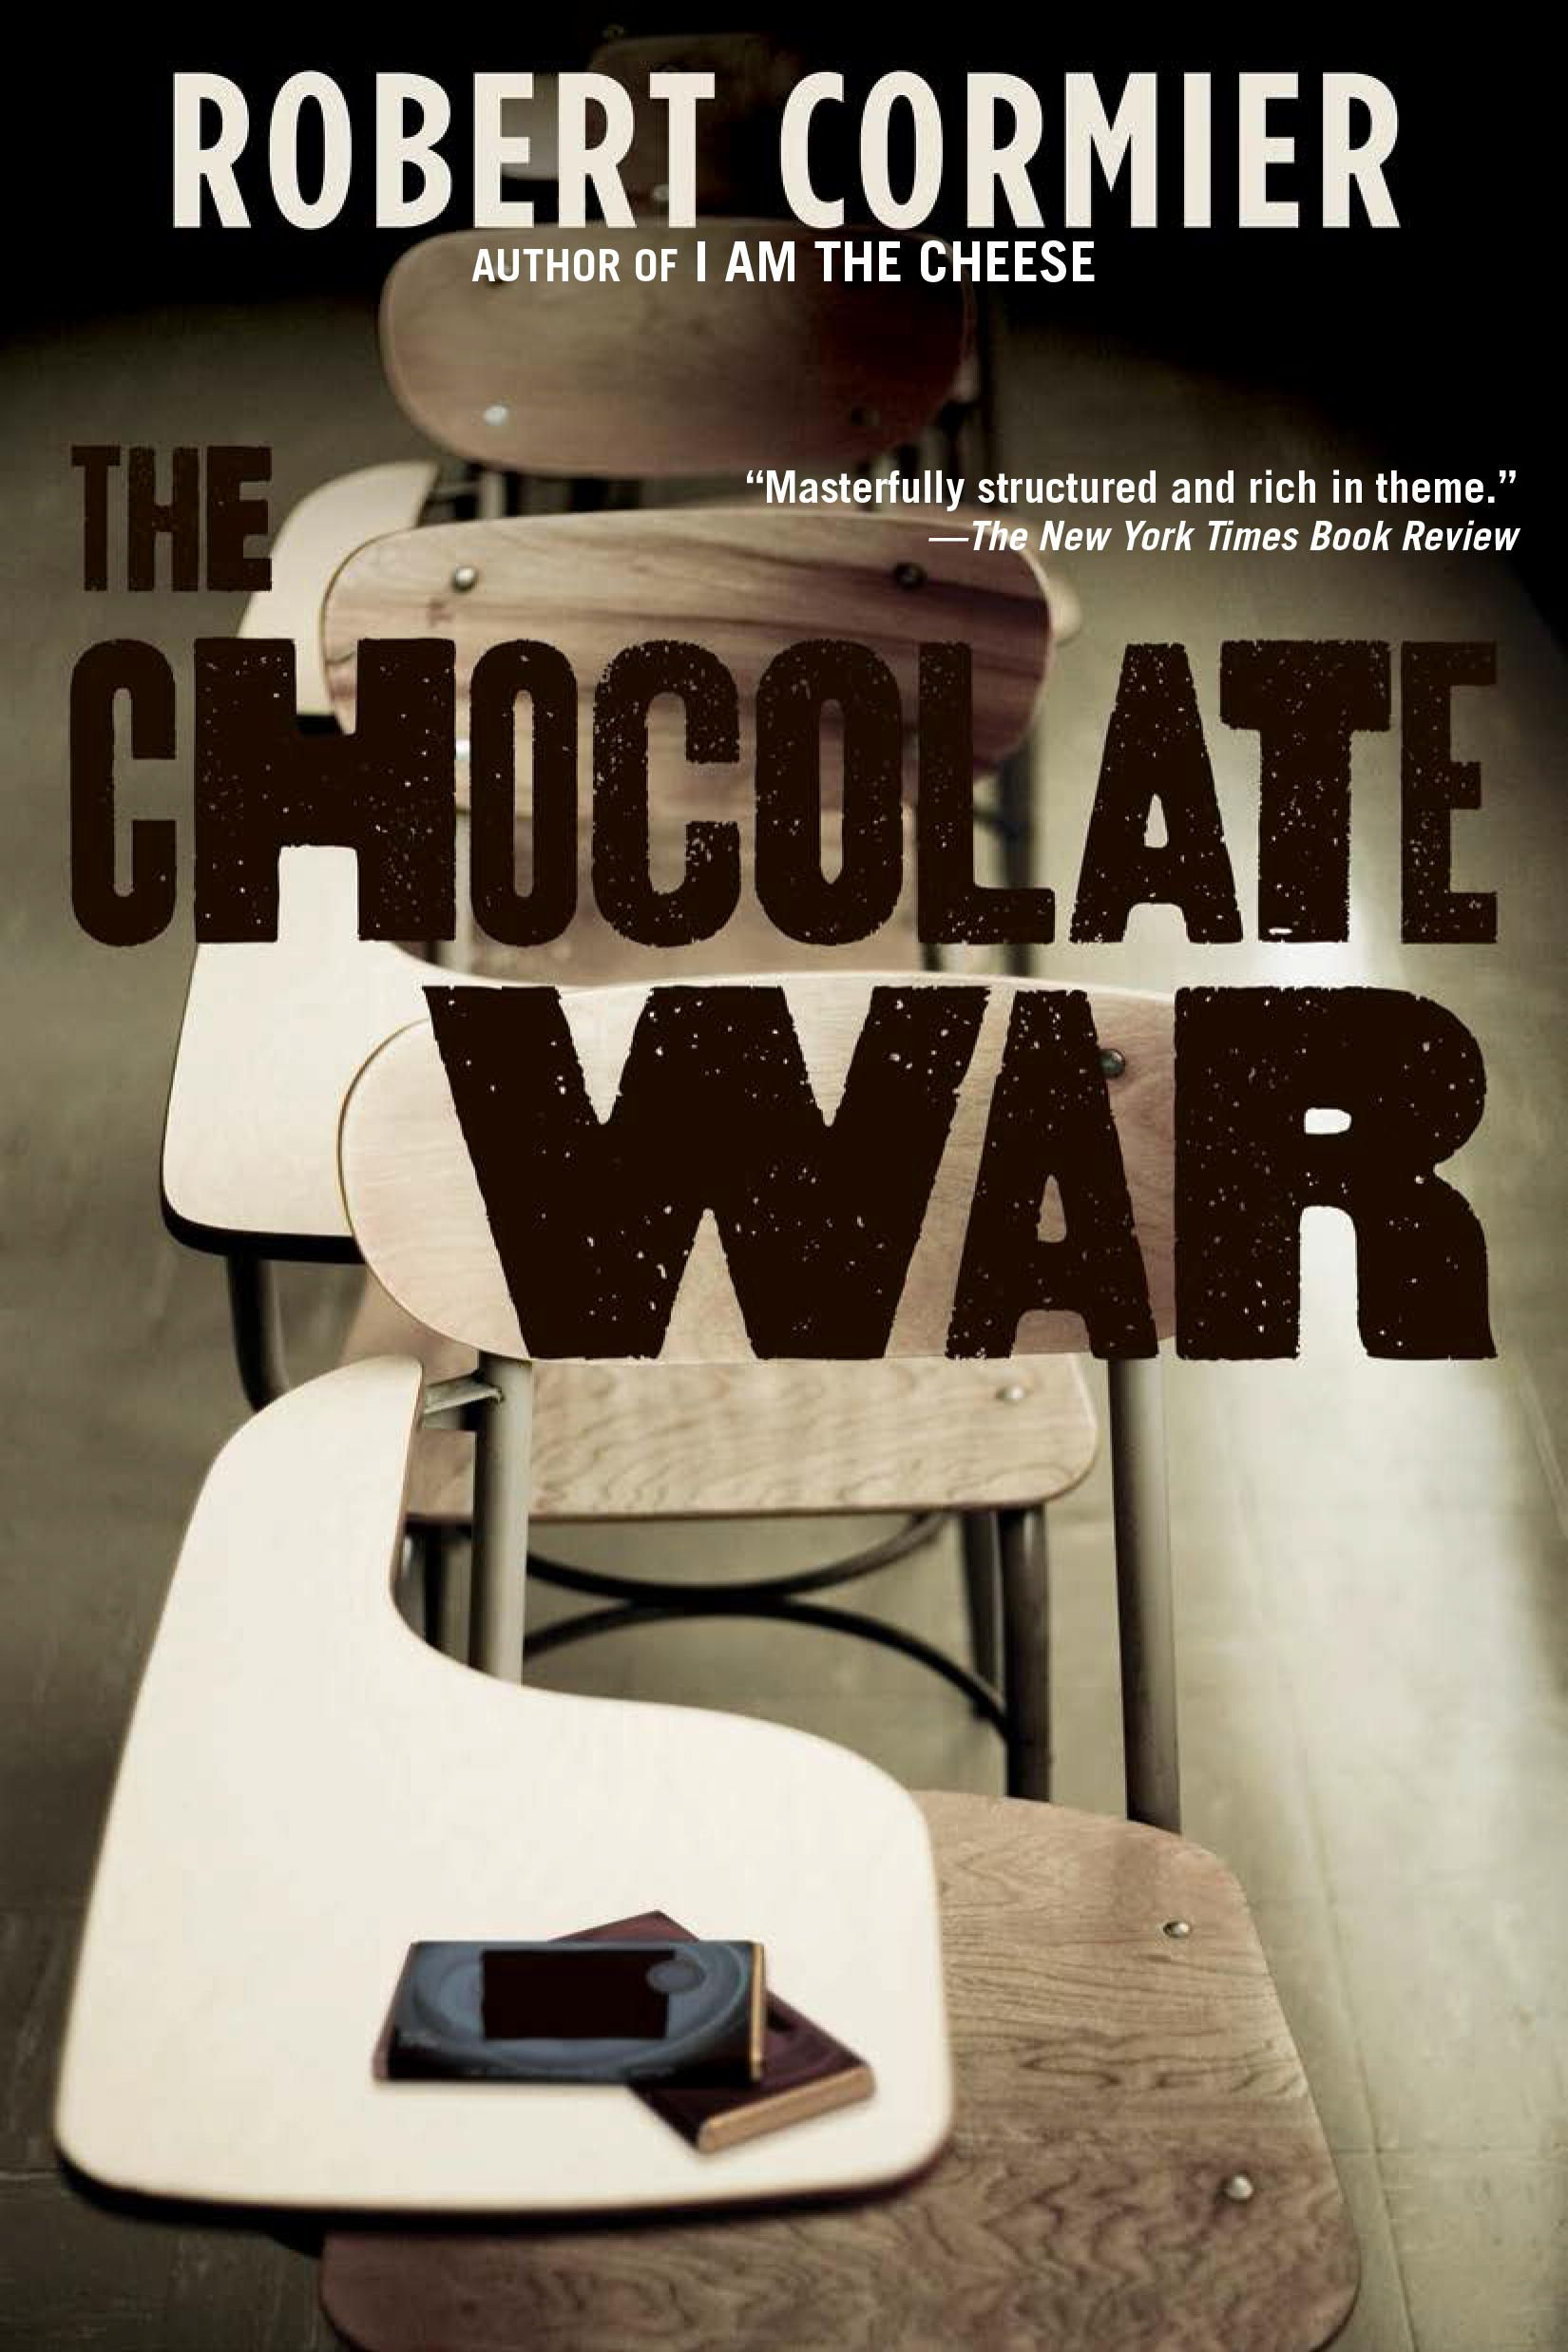 an analysis of the novel the chocolate war by robert cormier Free download or read online the chocolate war pdf (epub) book the first edition of this book was published in 1974, and was written by robert cormier the book was published in multiple languages including english language, consists of 267 pages and is available in paperback format.